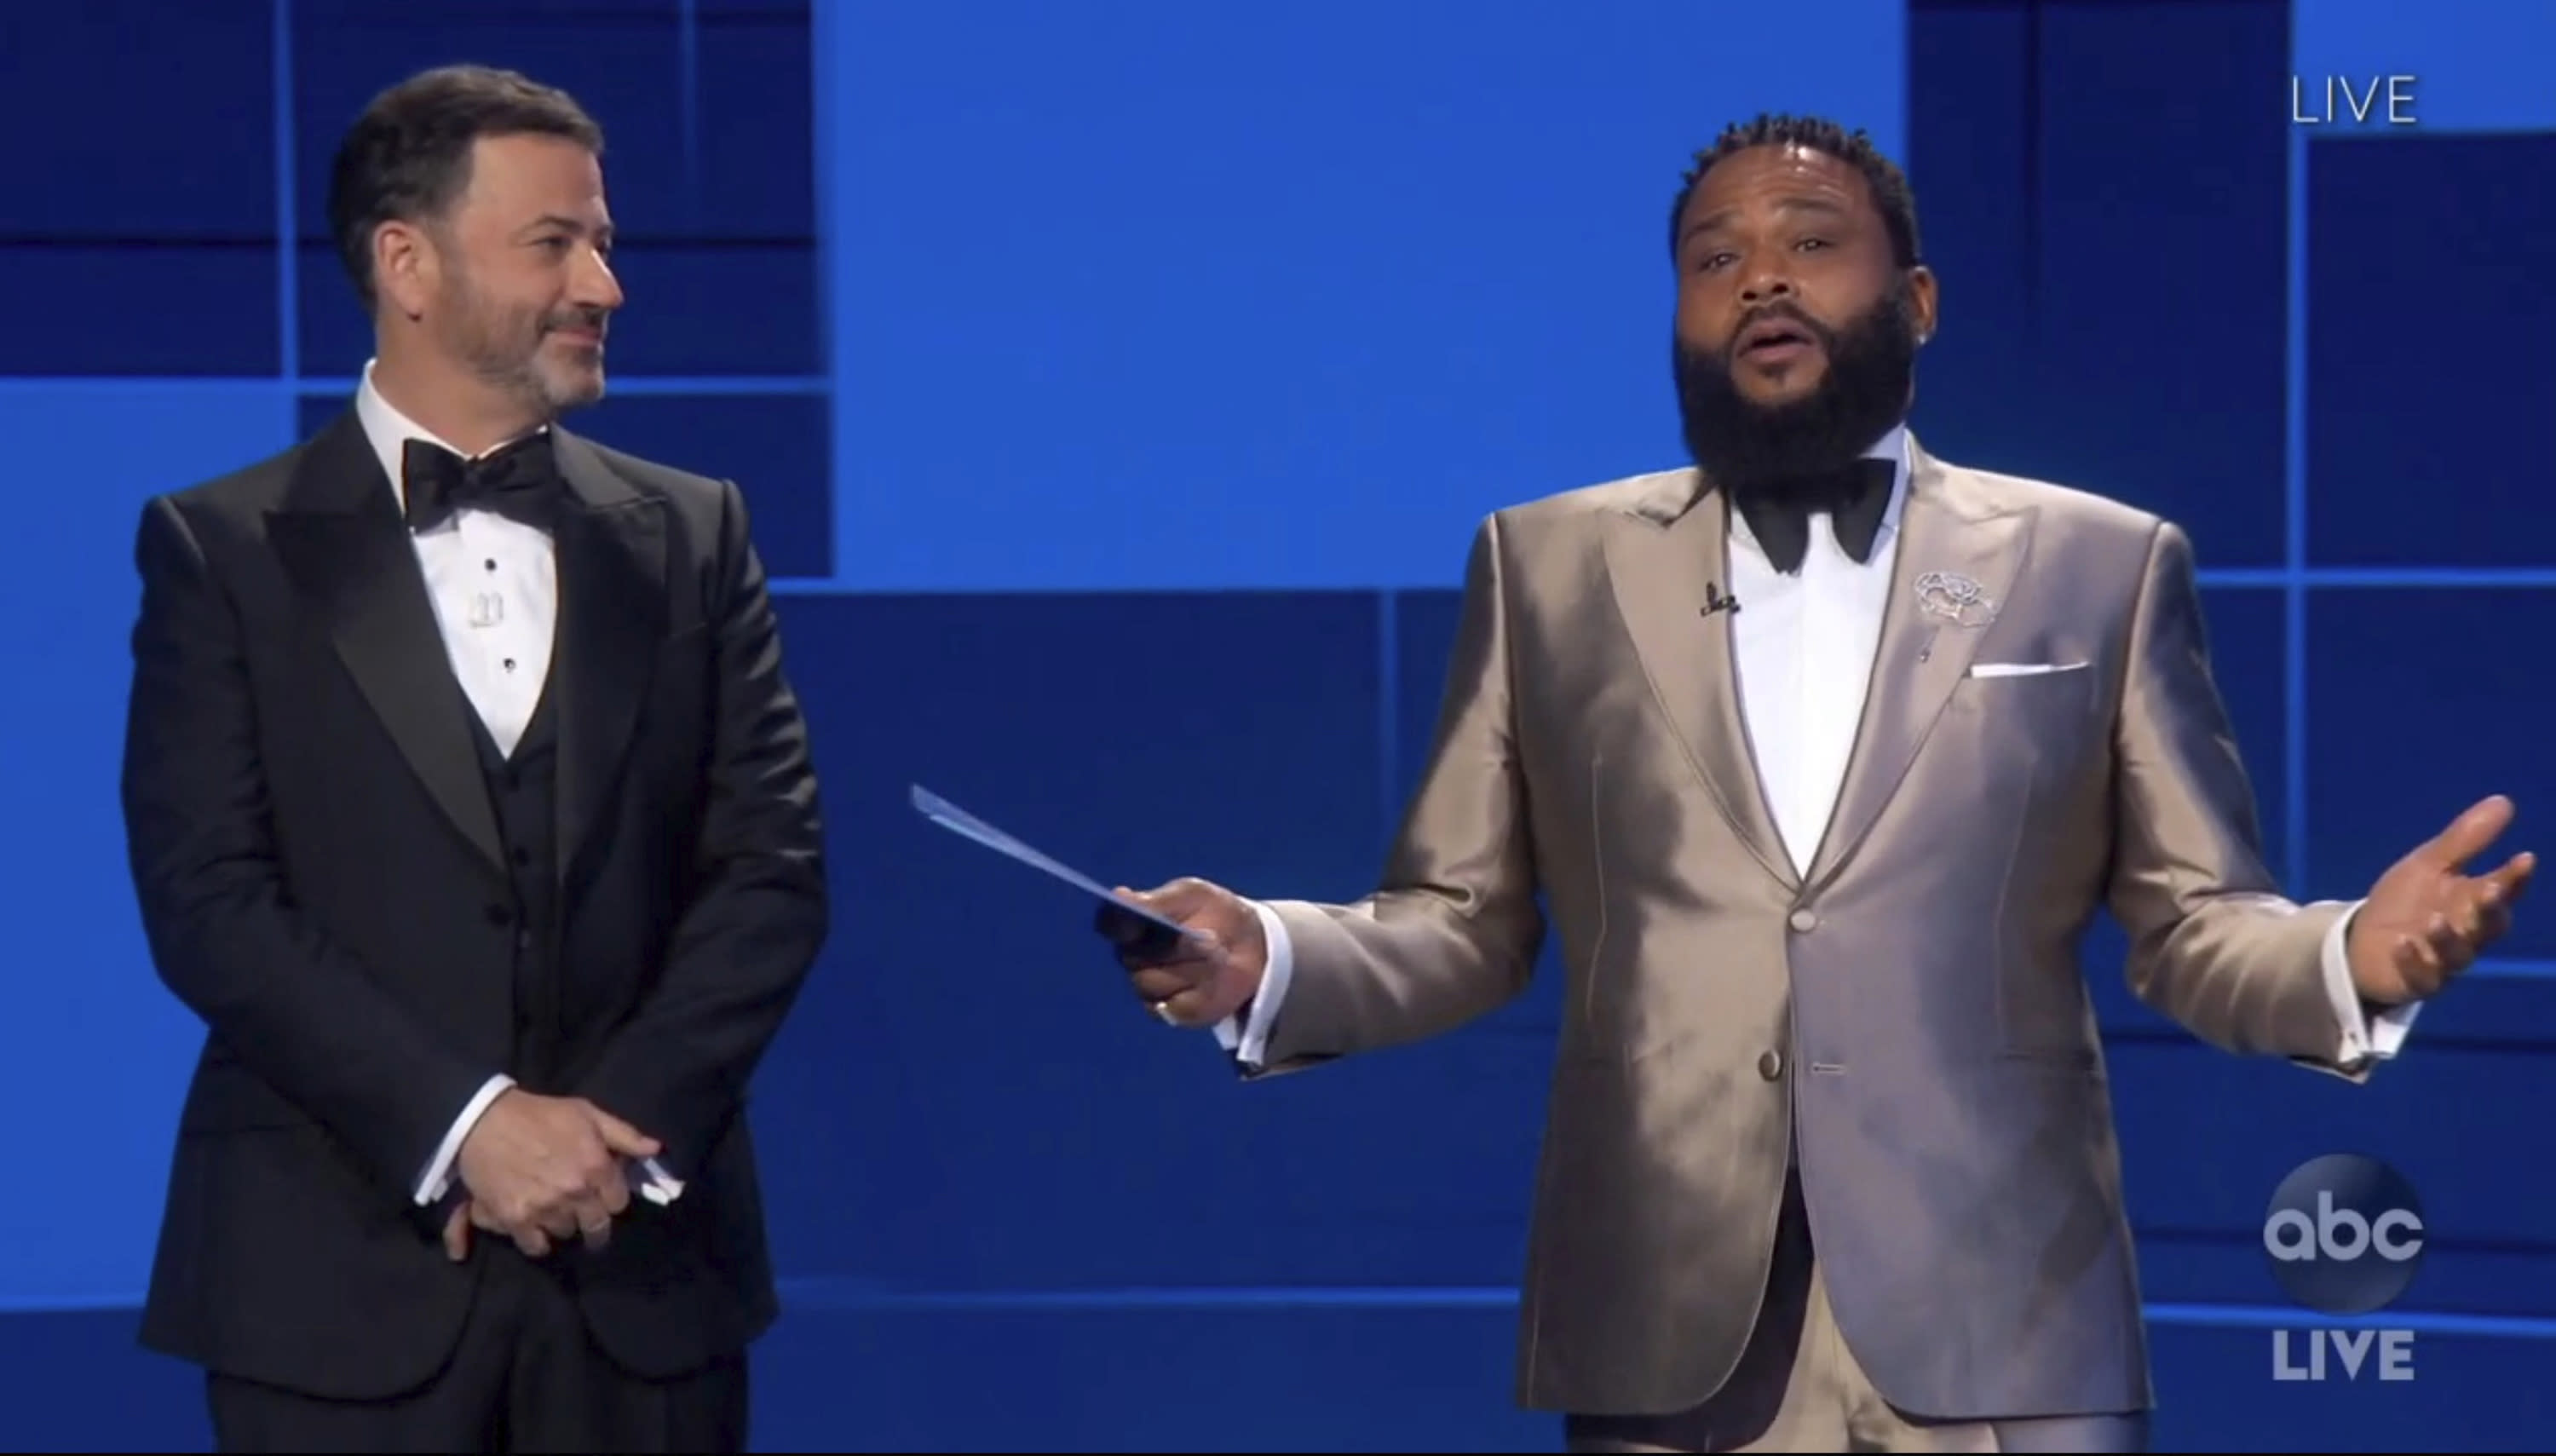 In this video grab captured on Sept. 20, 2020, courtesy of the Academy of Television Arts & Sciences and ABC Entertainment, Jimmy Kimmel, left, and Anthony Anderson speak on stage during the 72nd Emmy Awards broadcast. (The Television Academy and ABC Entertainment via AP)